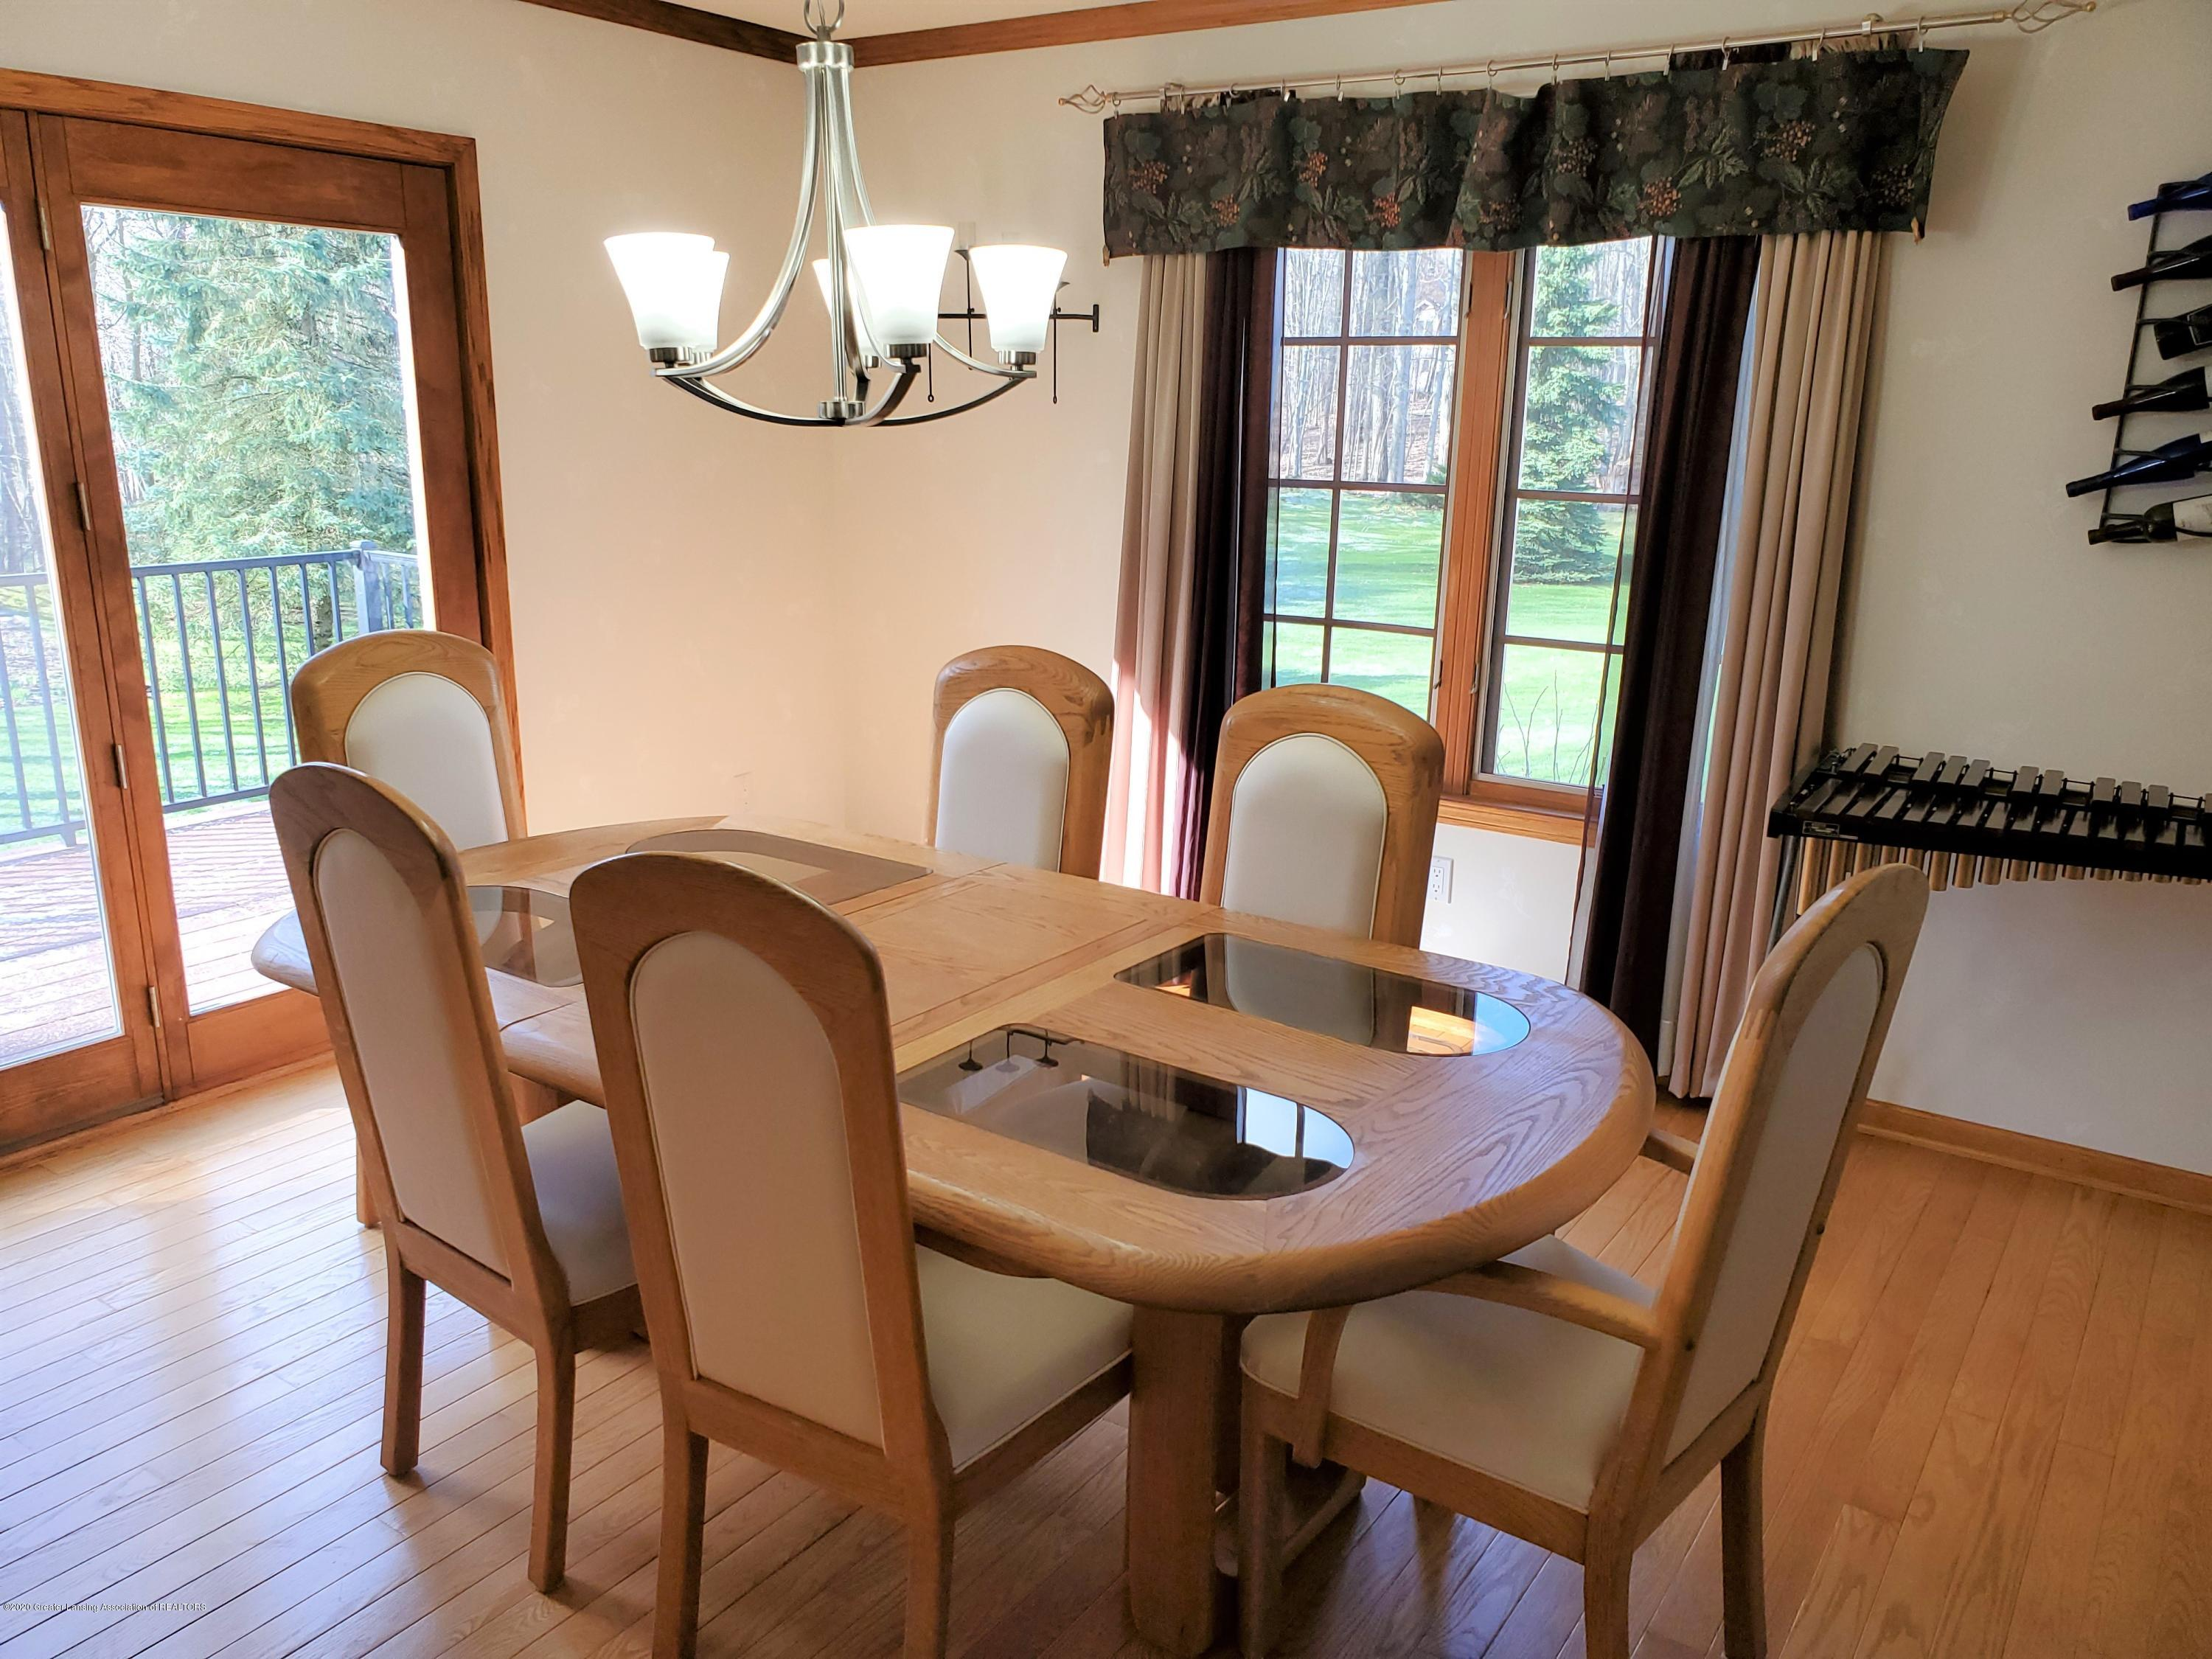 1075 Nautical Dr - Dining Room - 7